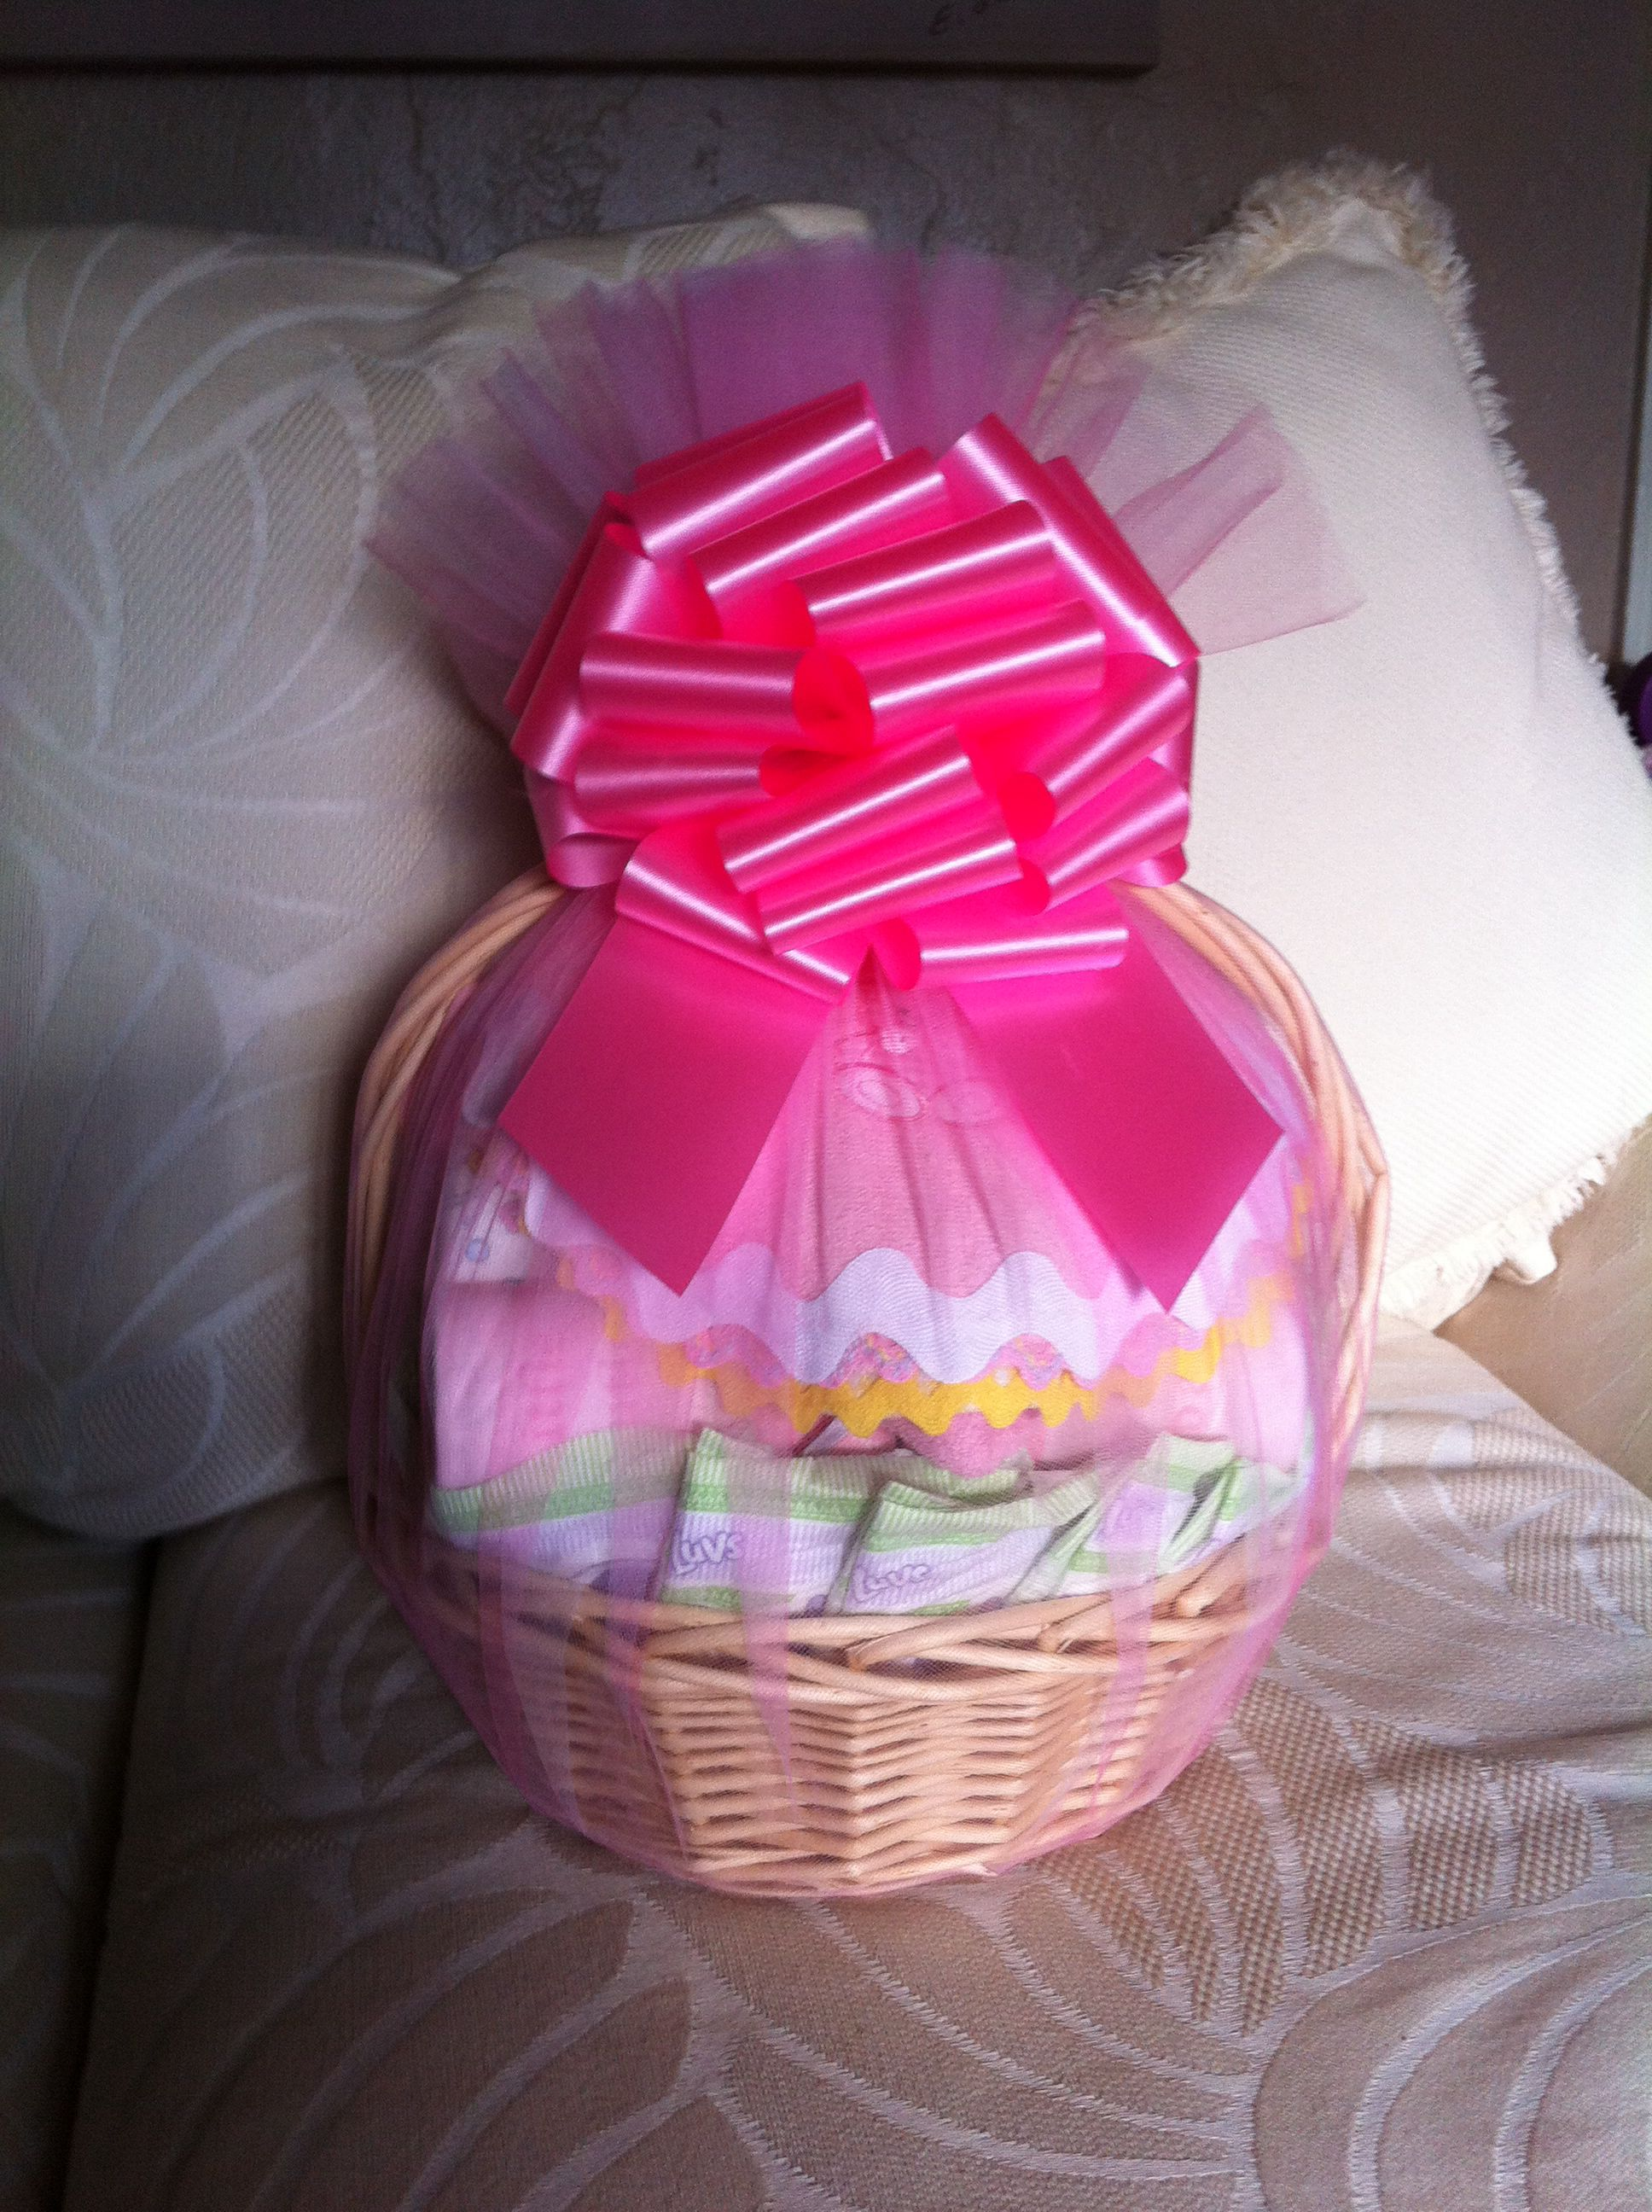 Baby girl basket from Kitty's Kreations.